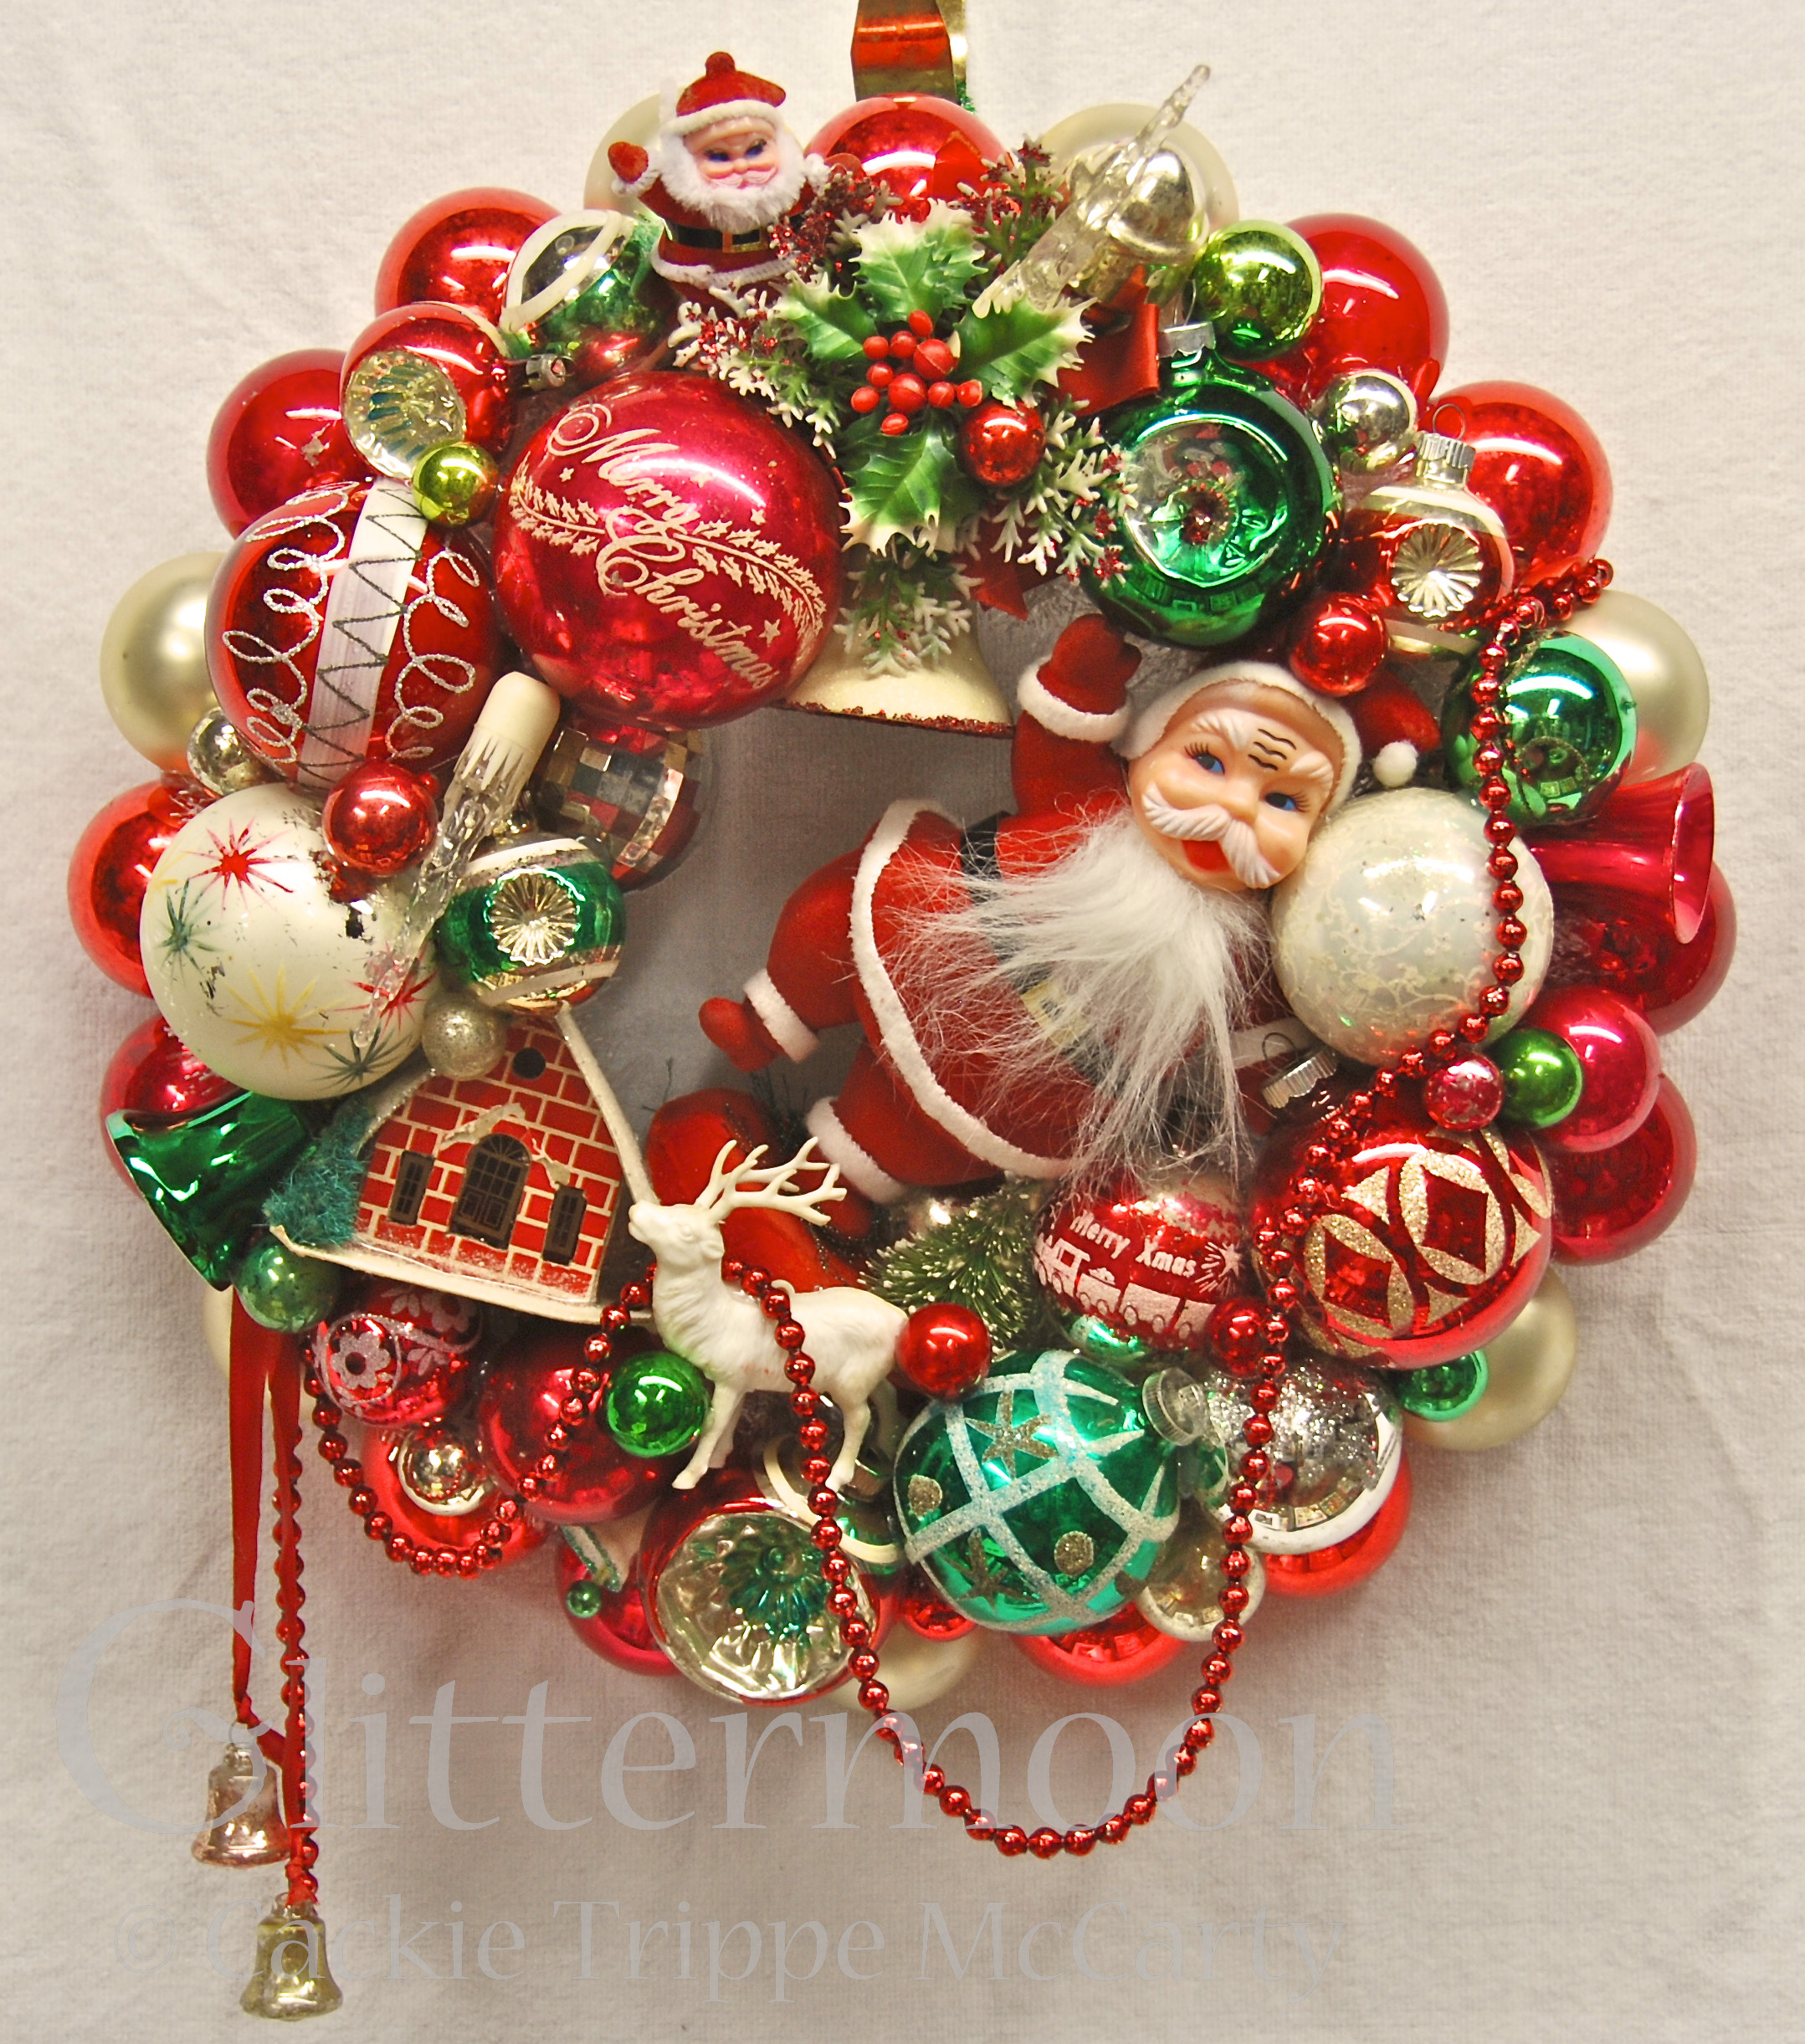 Vintage Christmas ornaments Lovely Santa's Greeting Wreath – Glittermoon Vintage Christmas Of Lovely 43 Images Vintage Christmas ornaments